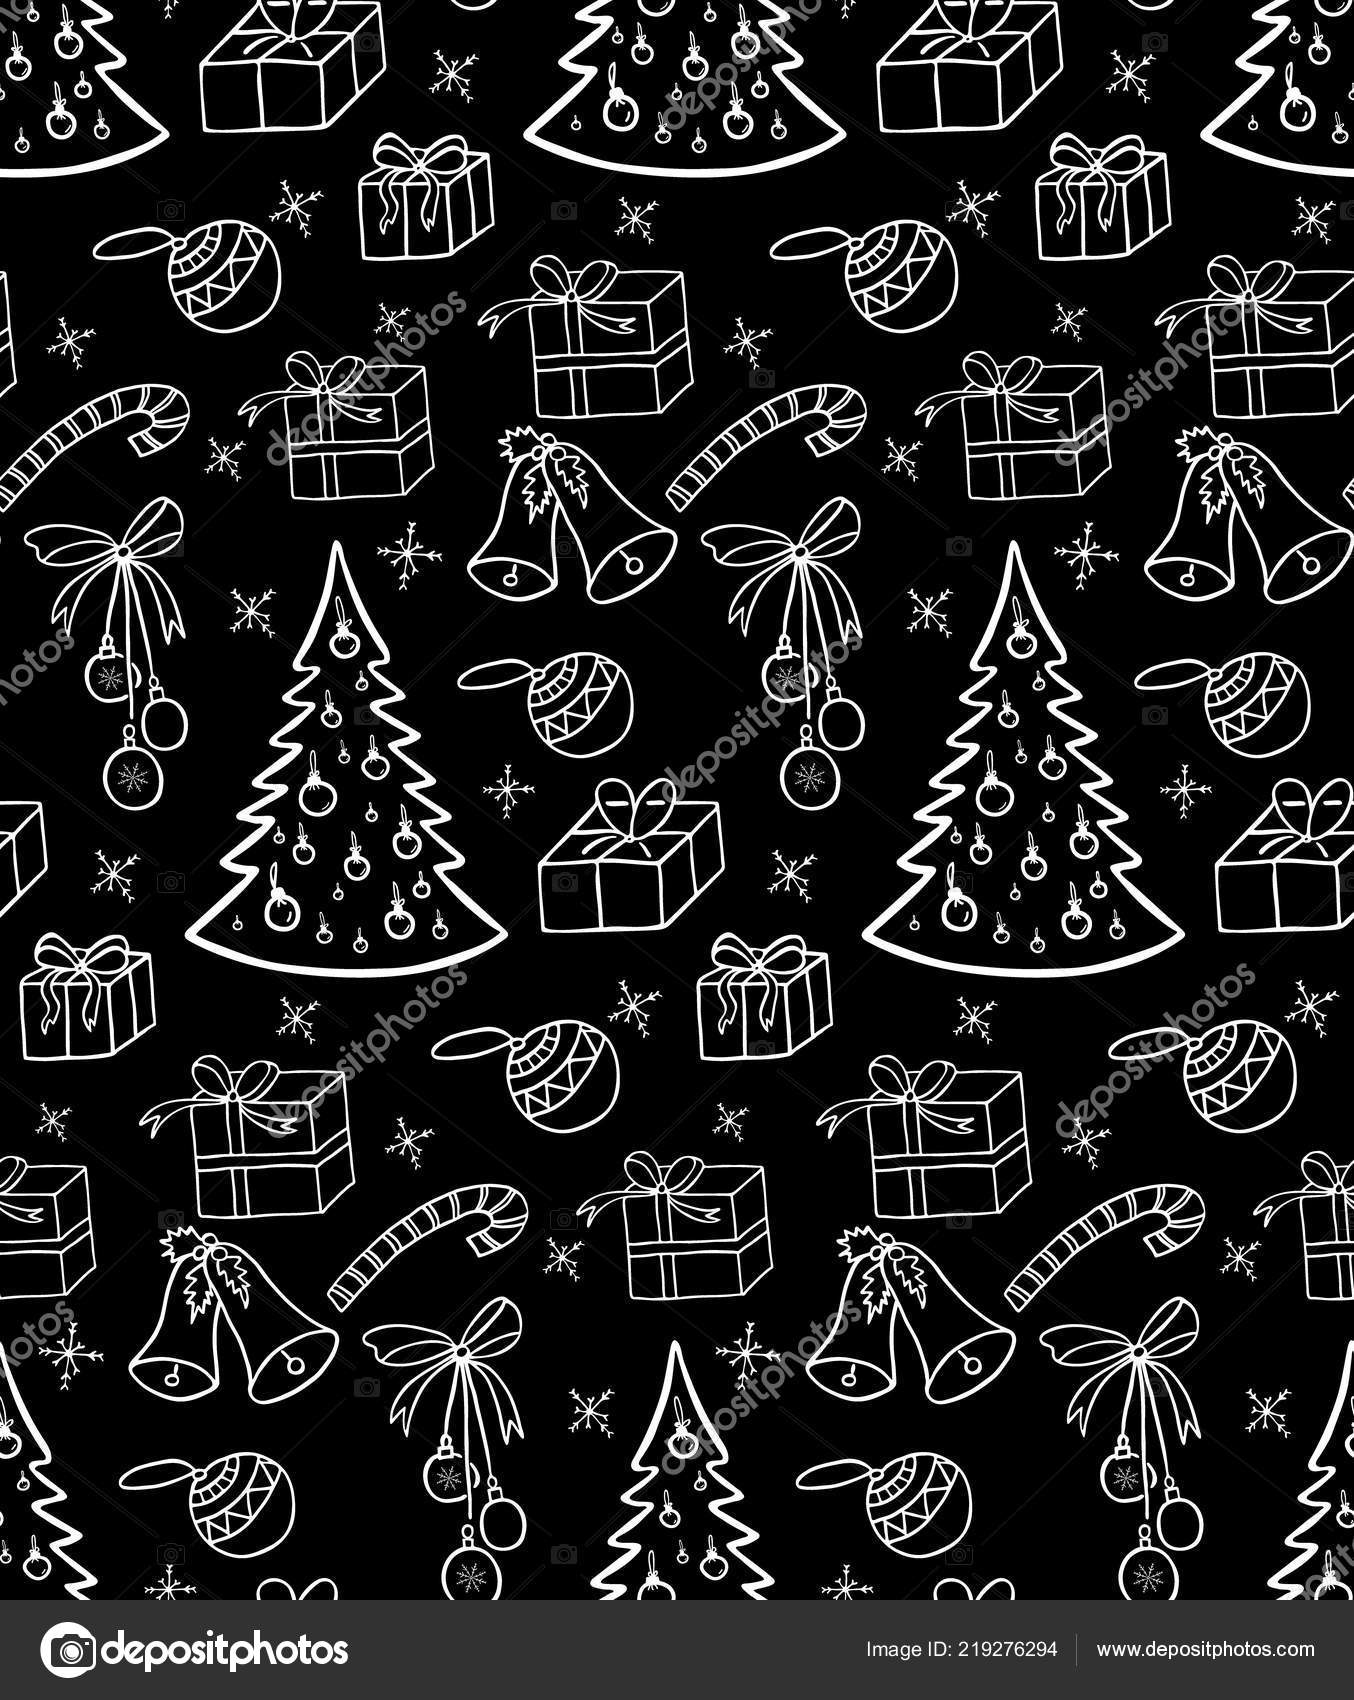 Black and white christmas tree wrapping paper